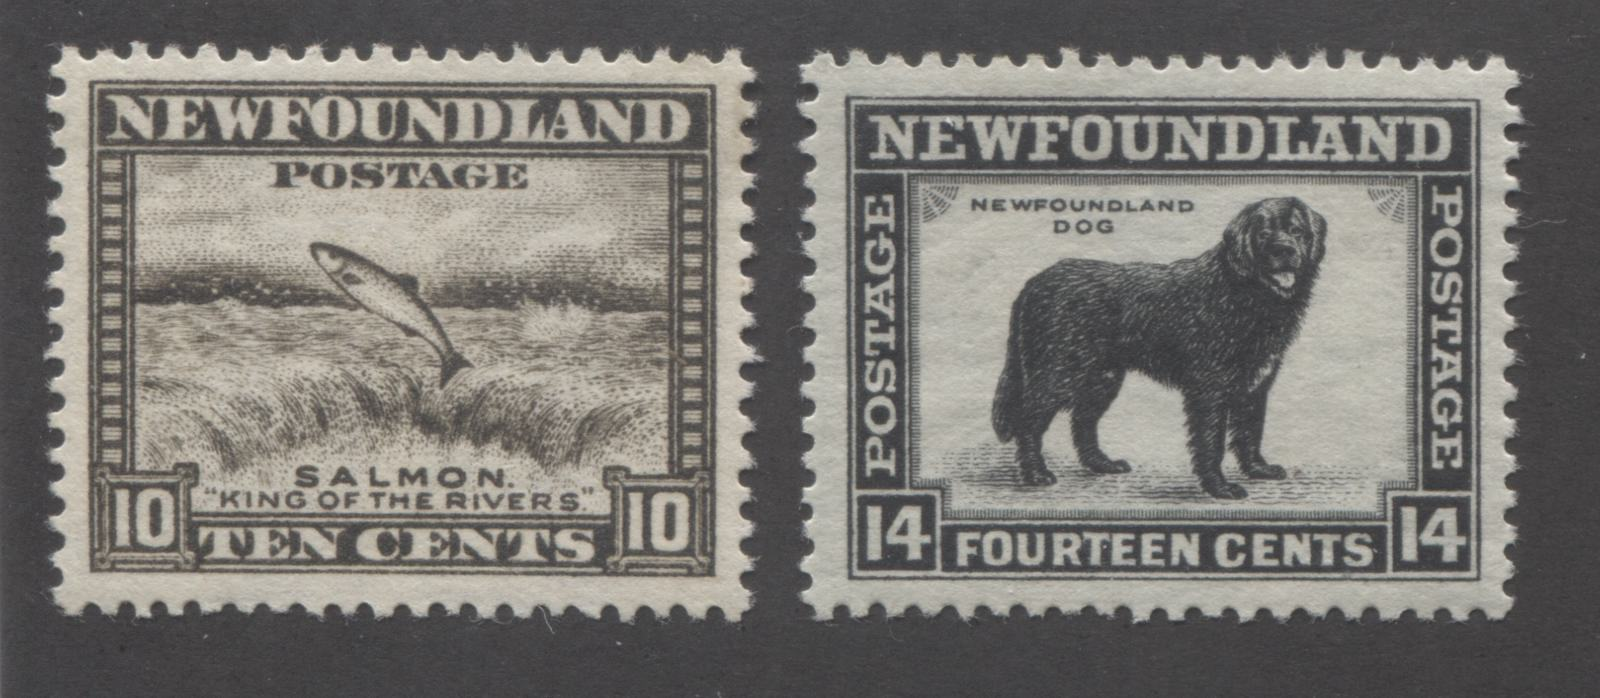 Newfoundland #193-194 10c Agate and 14c Black Salmon Leaping Falls & Newfoundland Dog, 1932-1937 First Resources Issue, Very Fine Mint OG Singles, Comb Perf. 13.5 Brixton Chrome